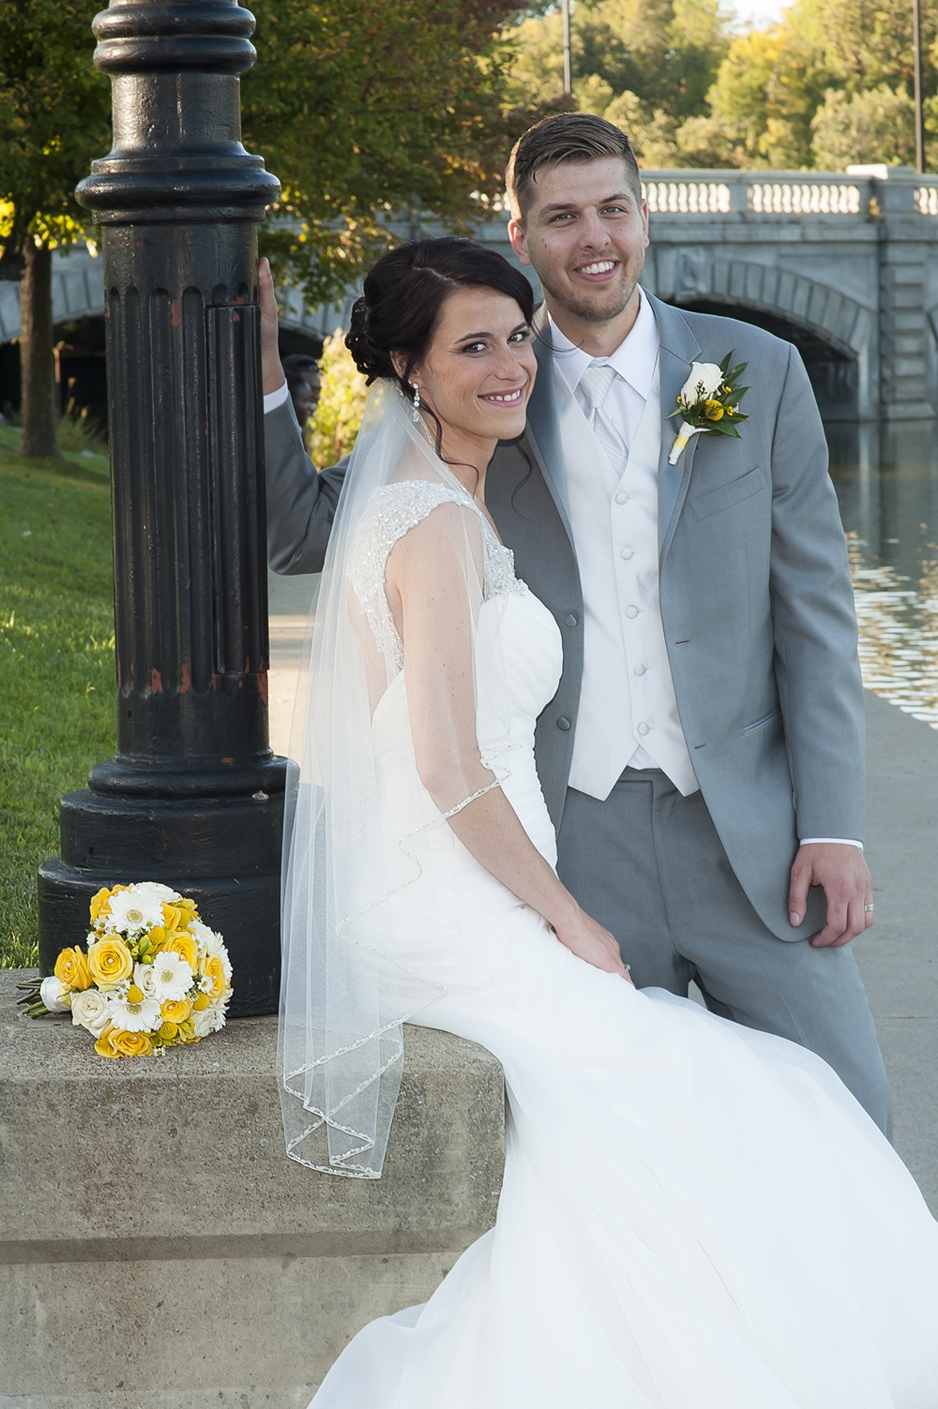 Newlyweds face challenges together on their honeymoon Janelle Pierce and Nicholas Debbins